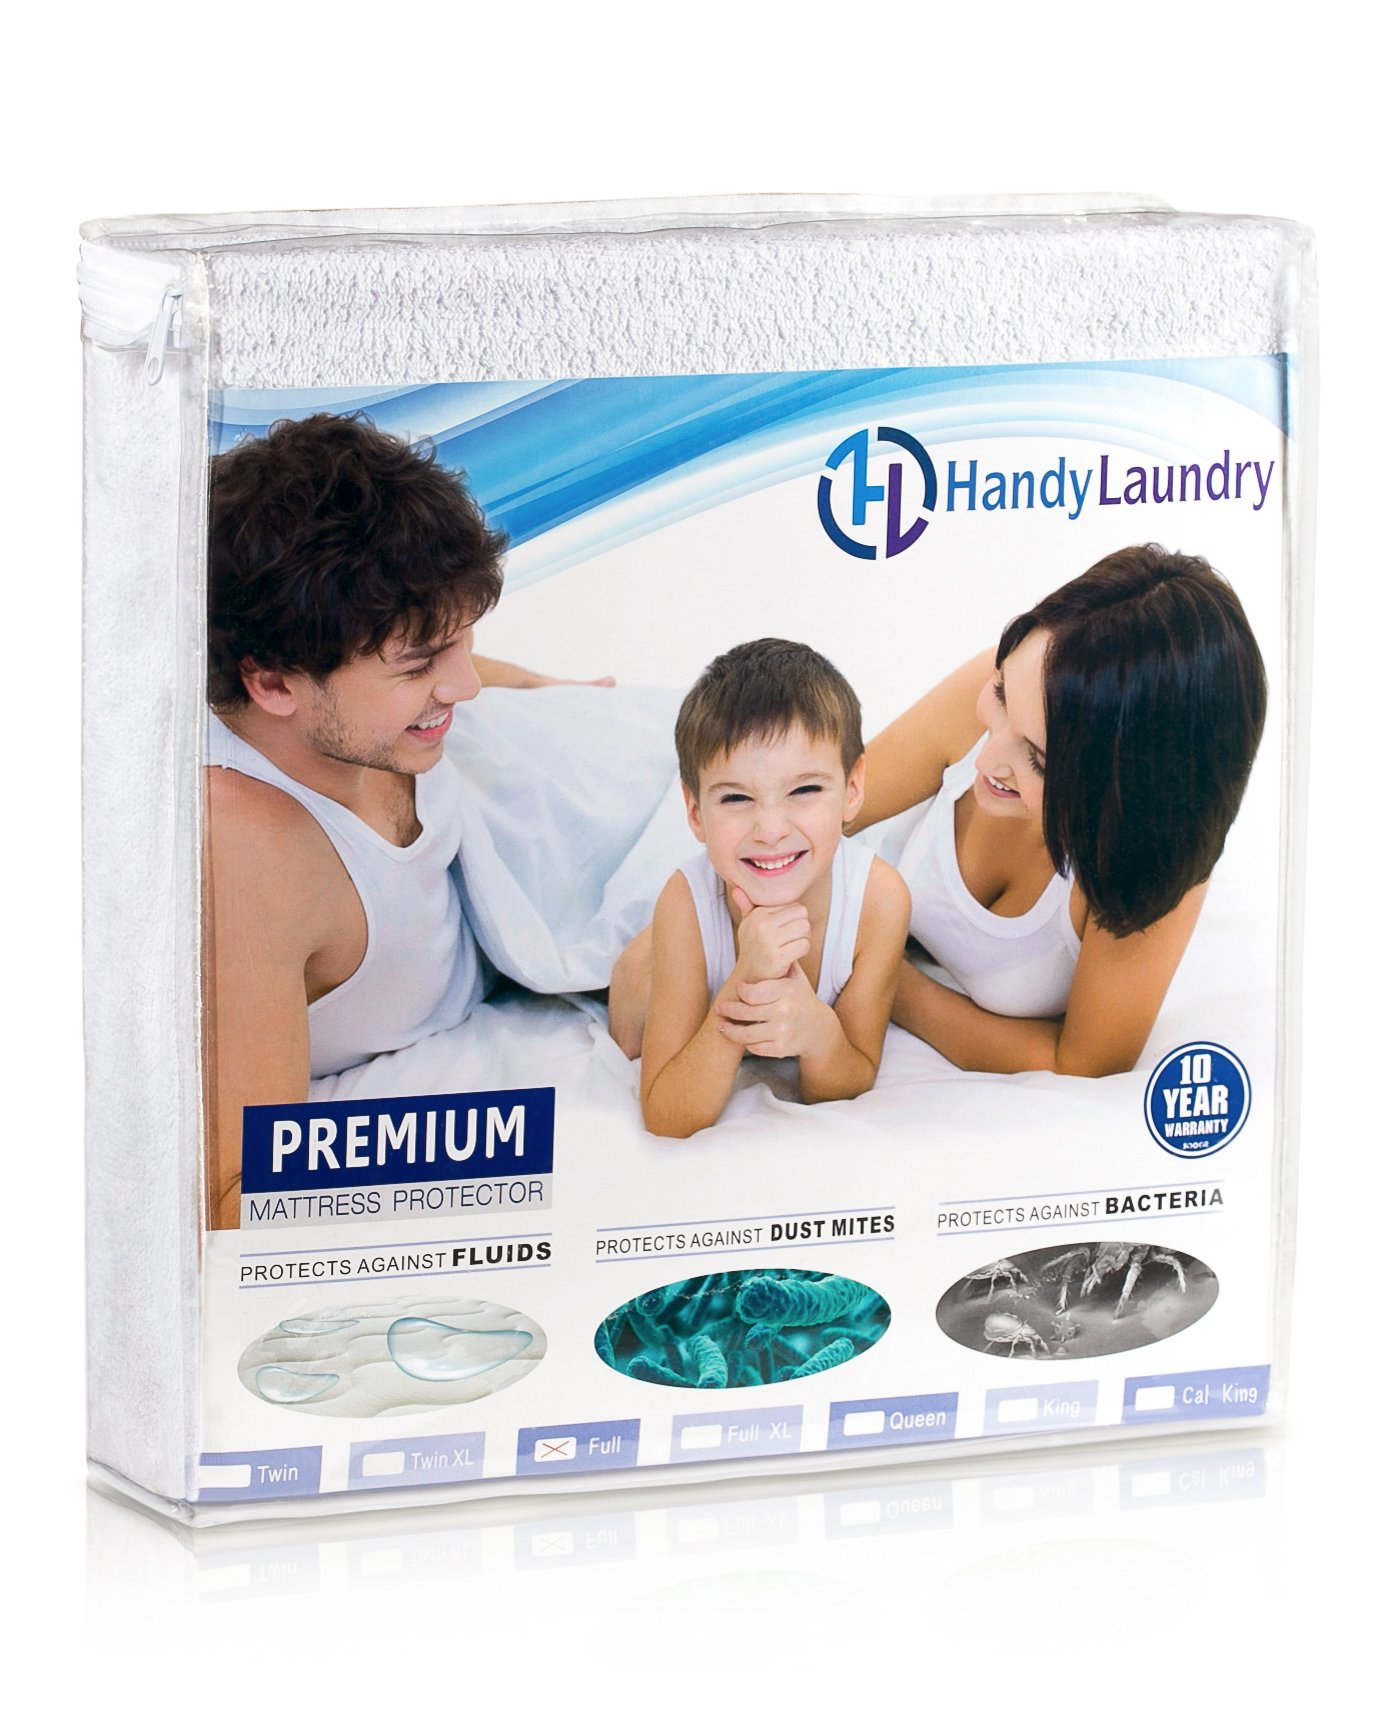 Twin Mattress Protector, Waterproof, Breathable, Blocks Dust Mites, Allergens, Smooth Soft Cotton Terry Cover. The Premium Mattress Protector will surely increase the life of your mattress. by Handy Laundry